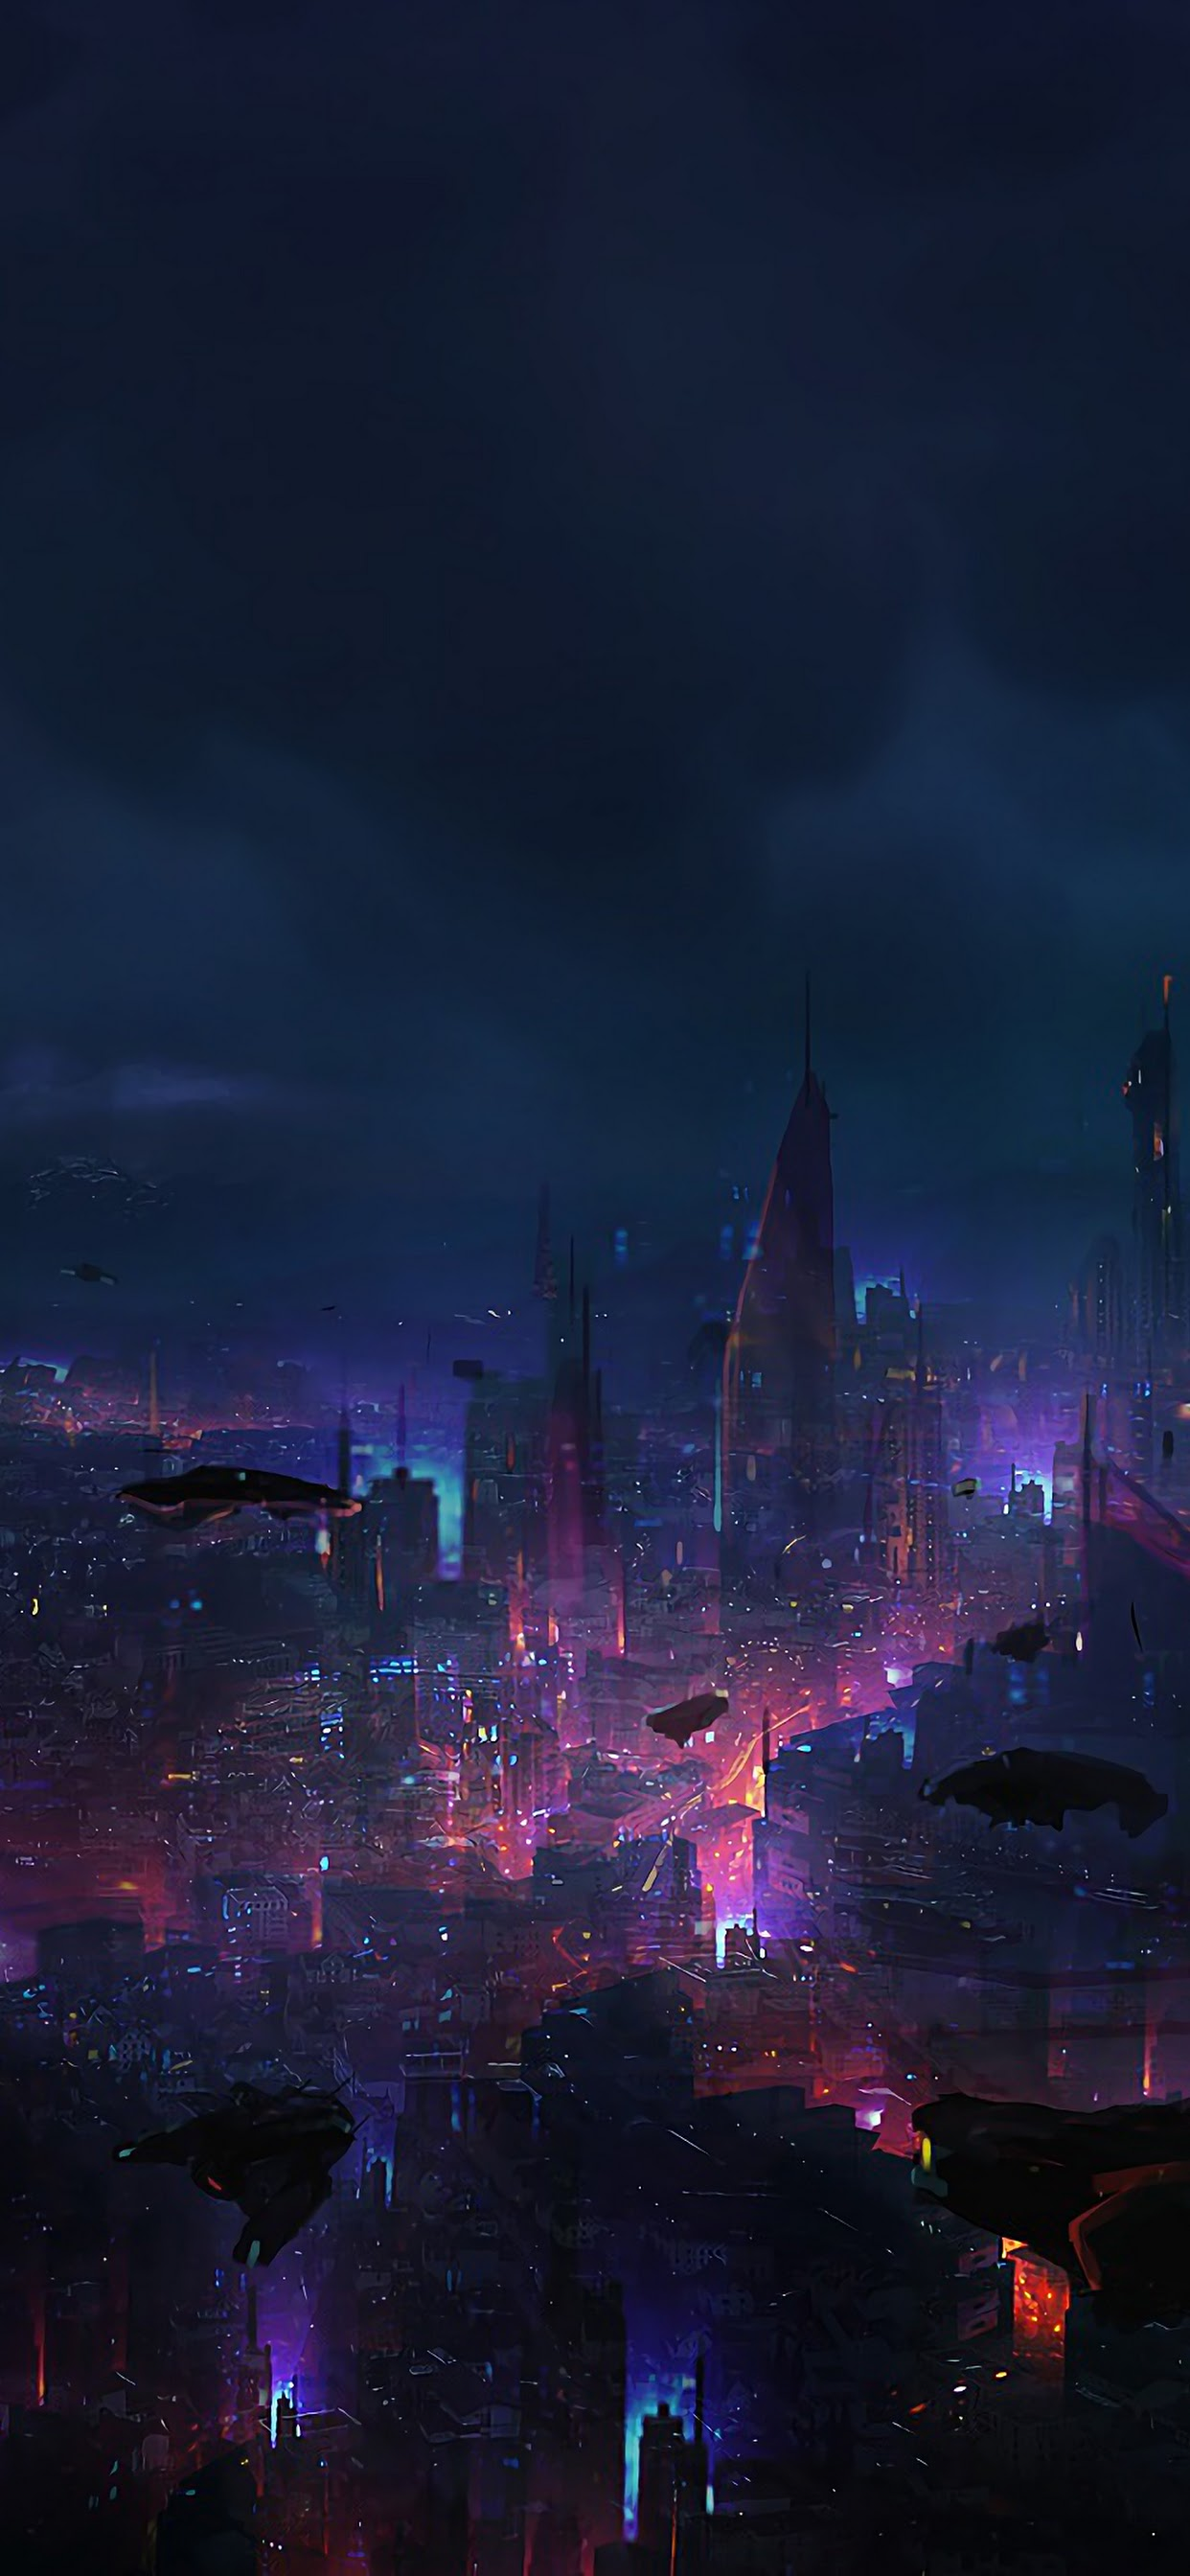 Cyberpunk City Night Scenery Sci Fi 4k Wallpaper 94